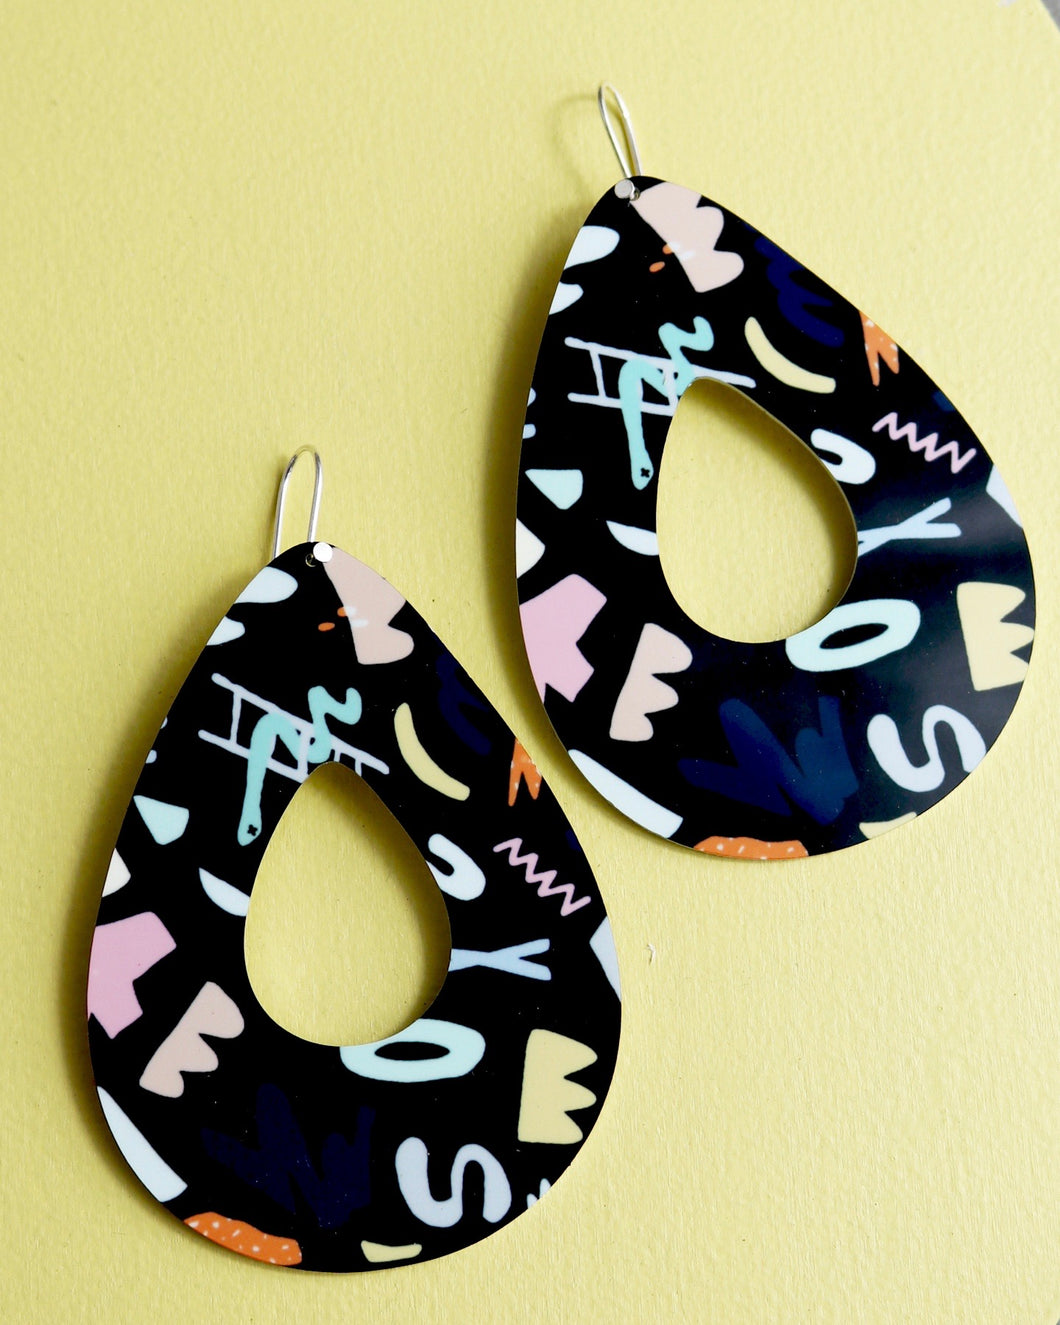 Tear outline earrings - Michael Black